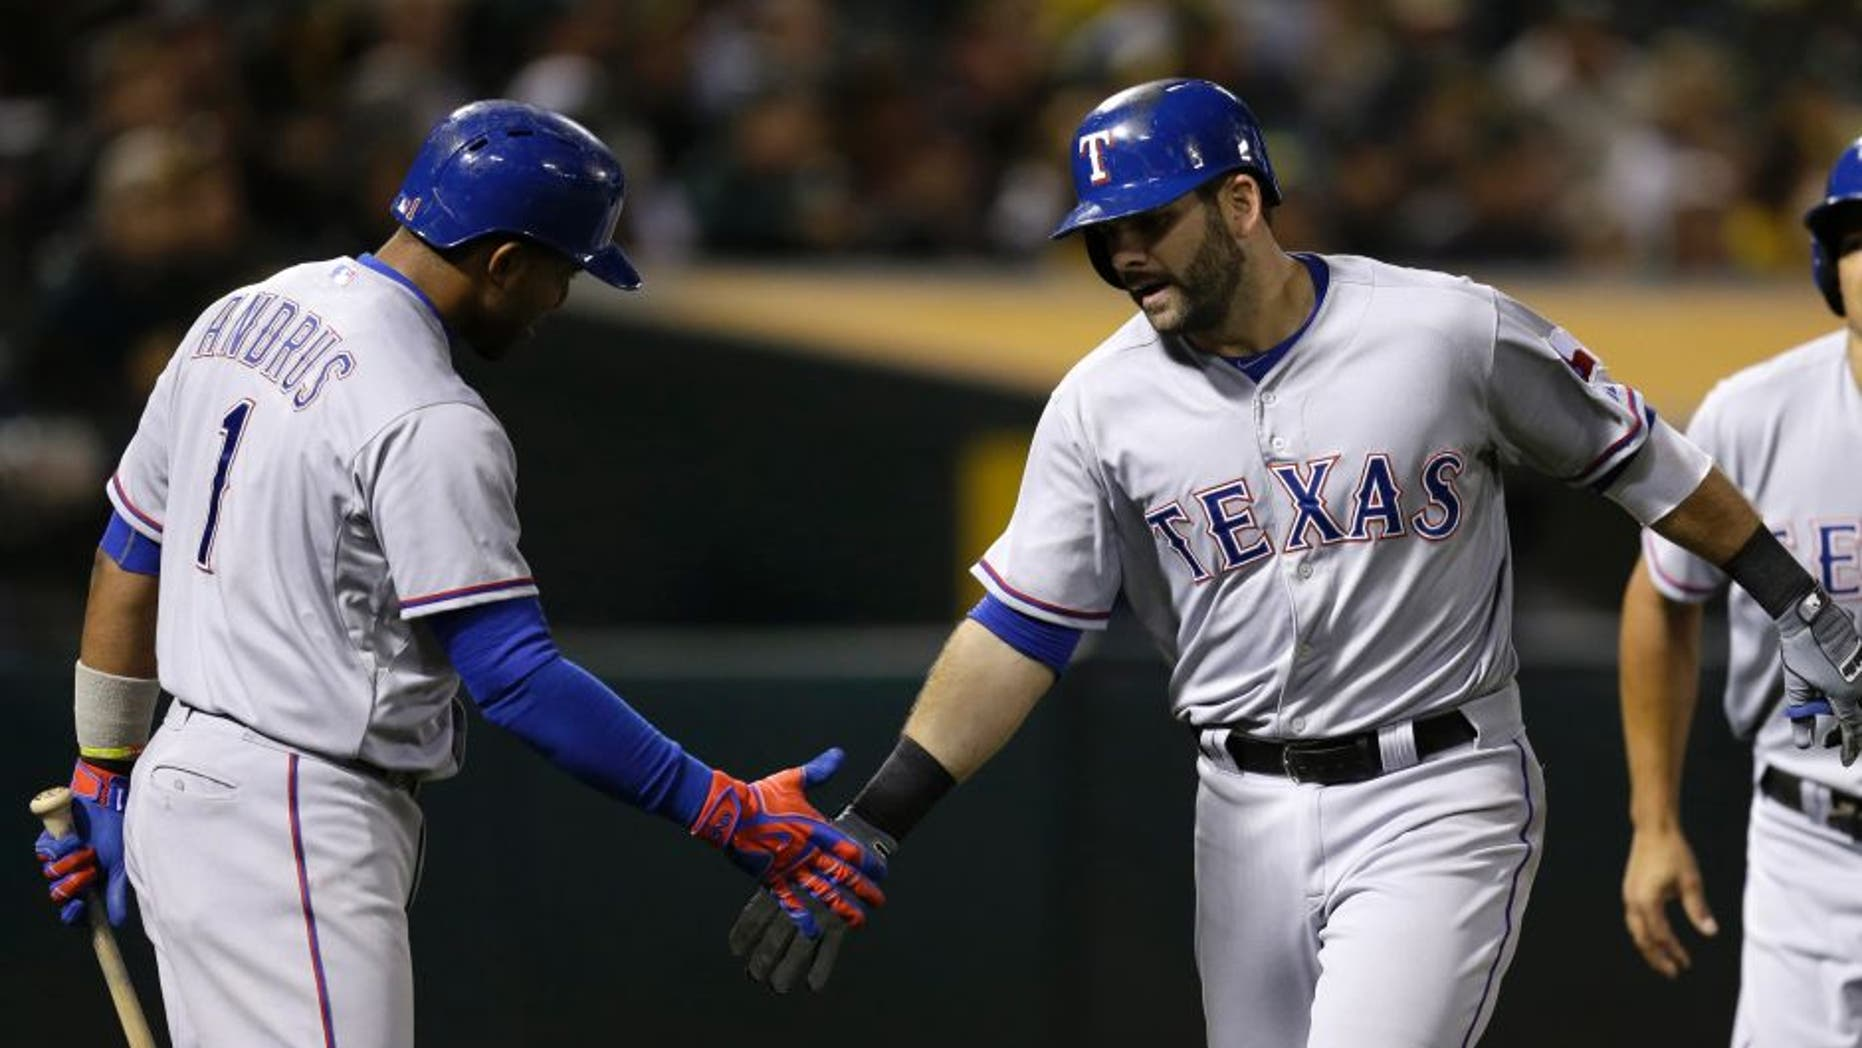 Texas Rangers' Mitch Moreland, center, is congratulated by Elvis Andrus (1) after hitting a two-run home run off Oakland Athletics' Sean Nolin during the sixth inning of a baseball game Tuesday, Sept. 22, 2015, in Oakland, Calif. (AP Photo/Ben Margot)